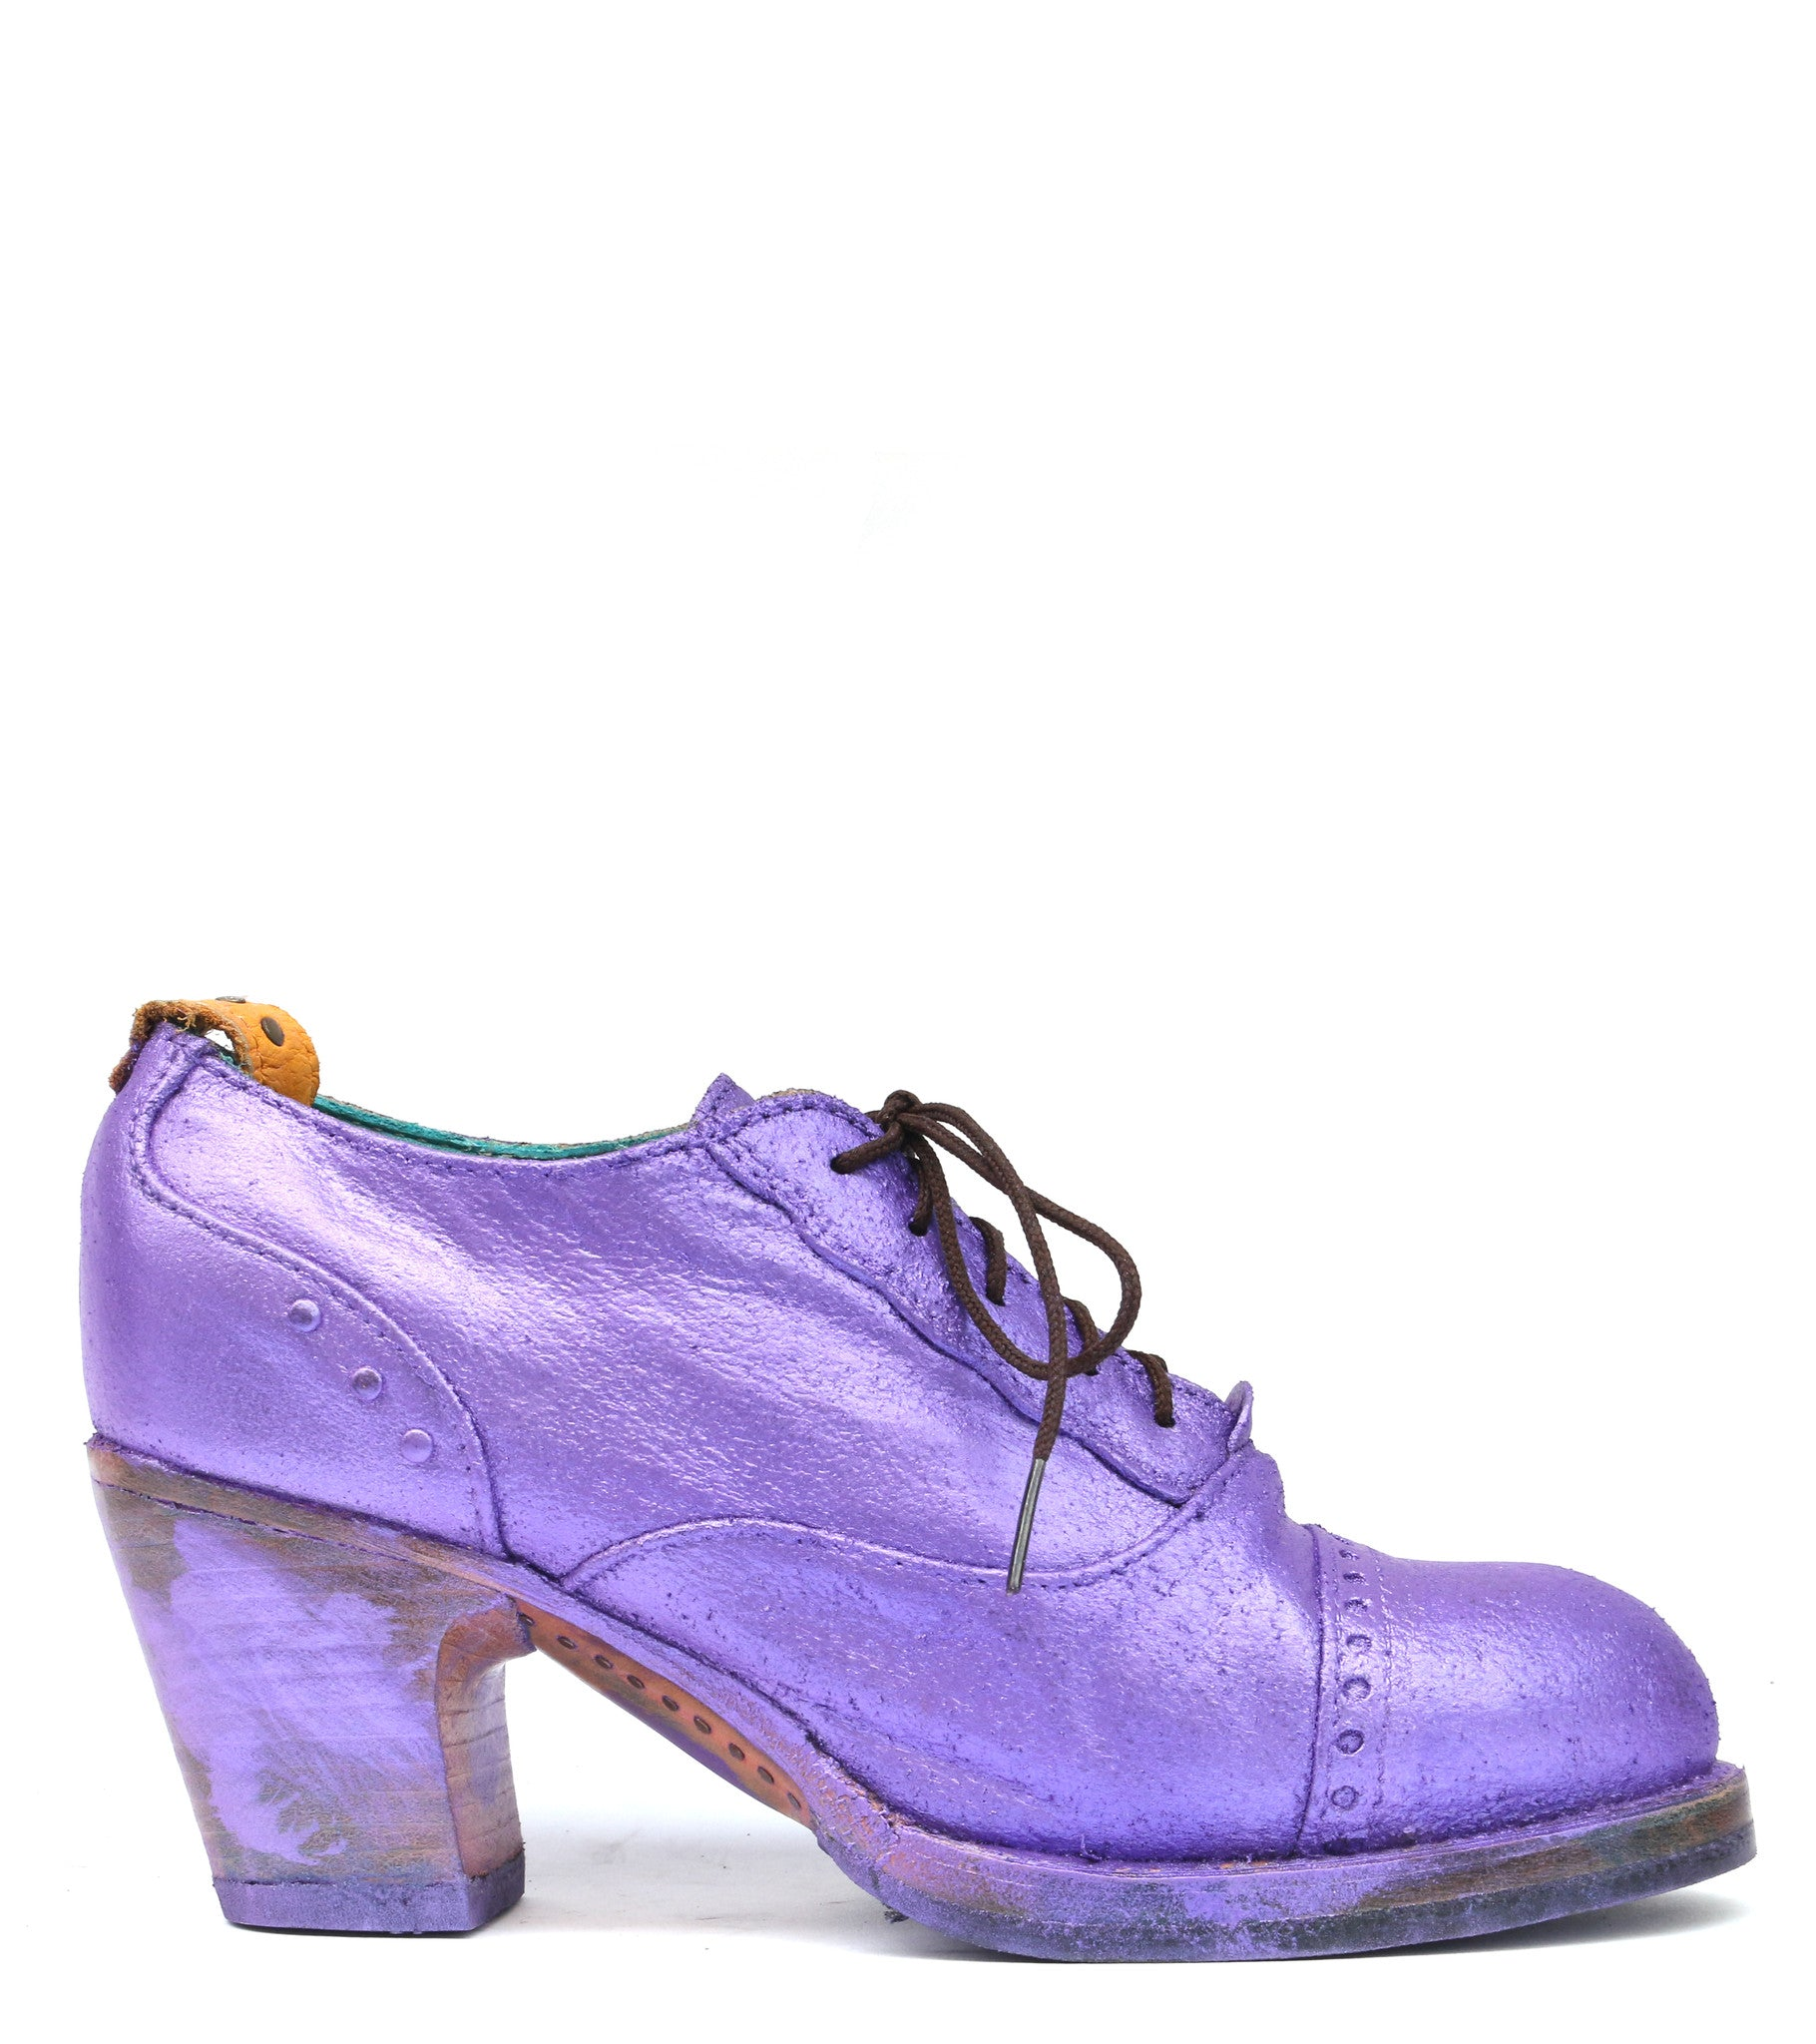 Rayne Shoes For Sale